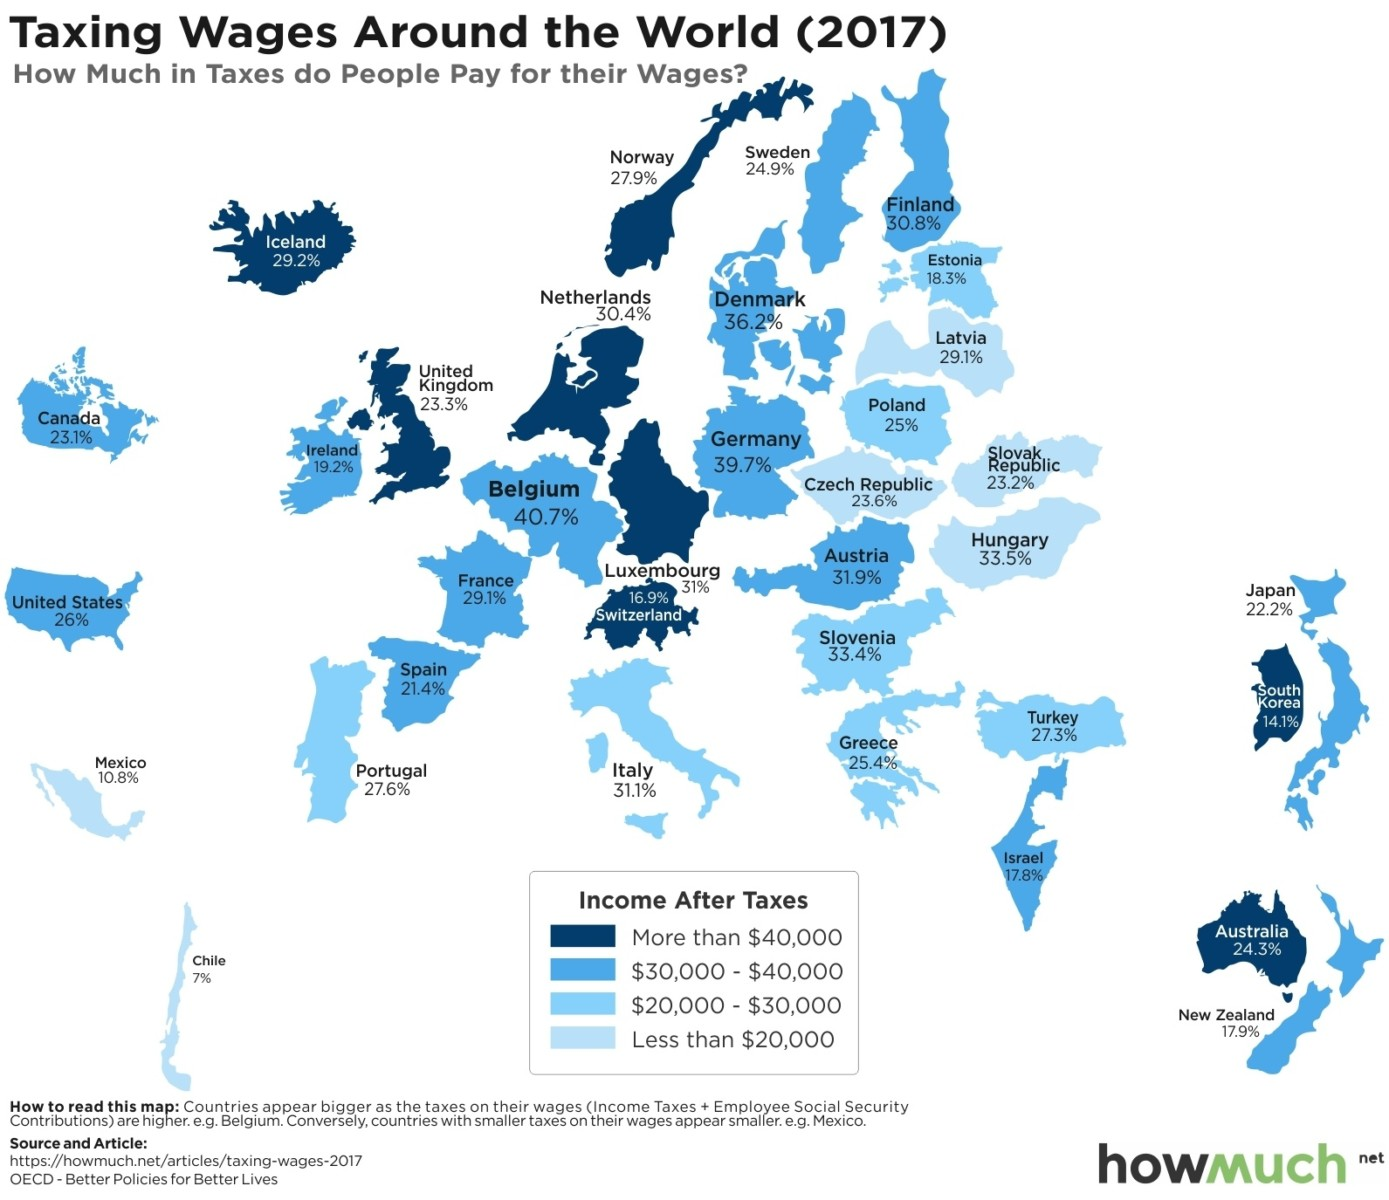 taxing-wages-2017-ec81